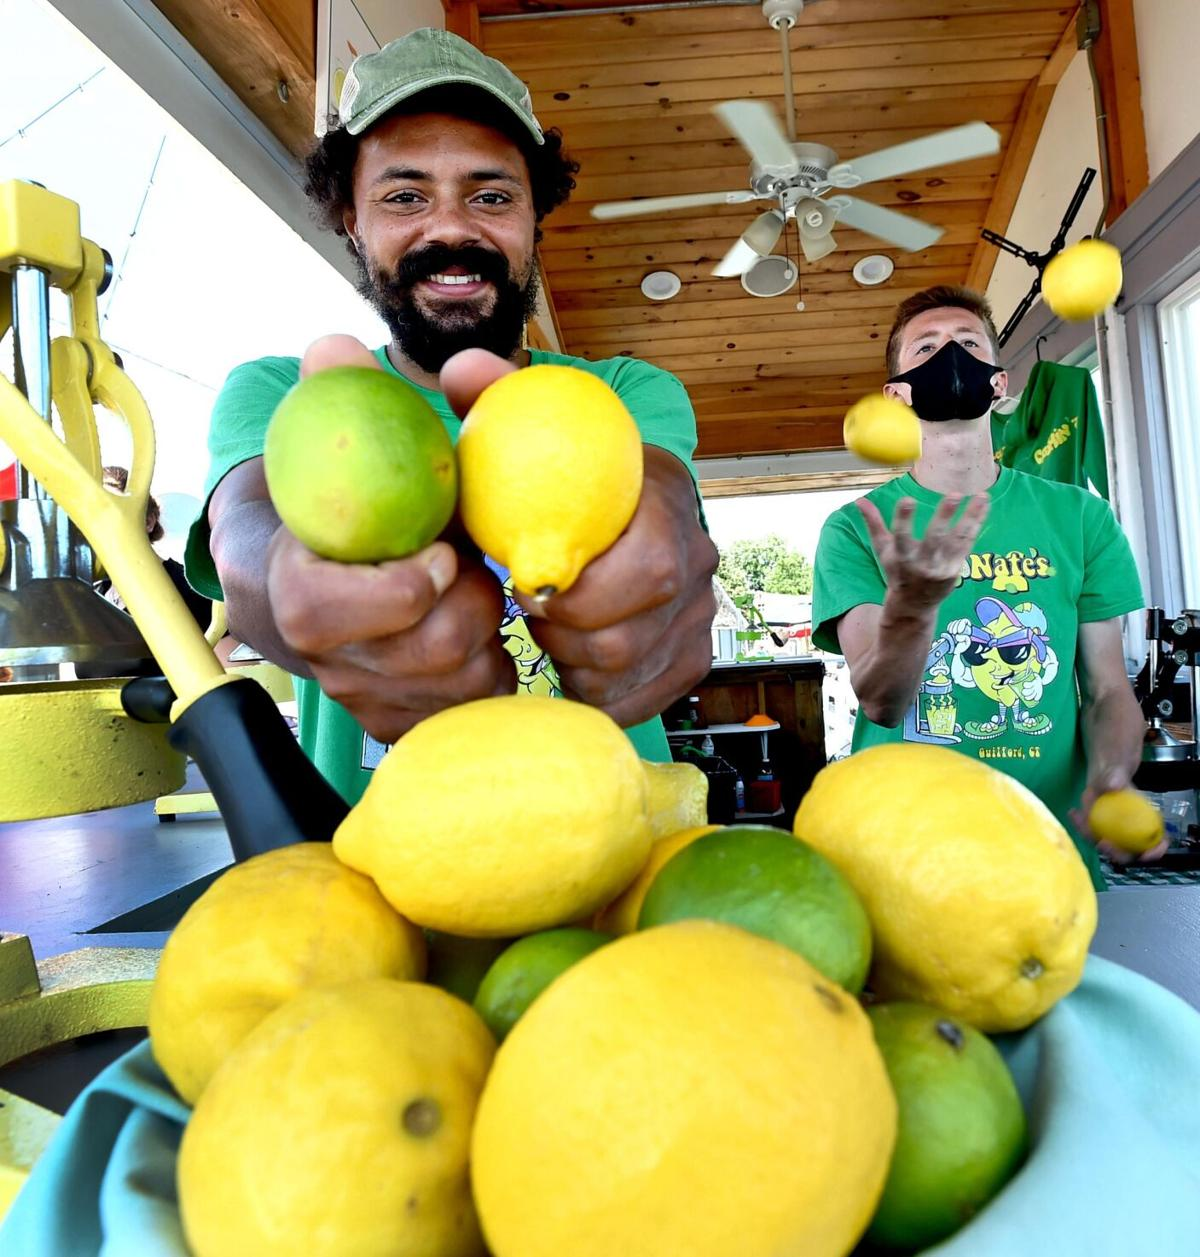 He started with lemons and he turned it into Nate's Lemonates, a lemonade stand with a view